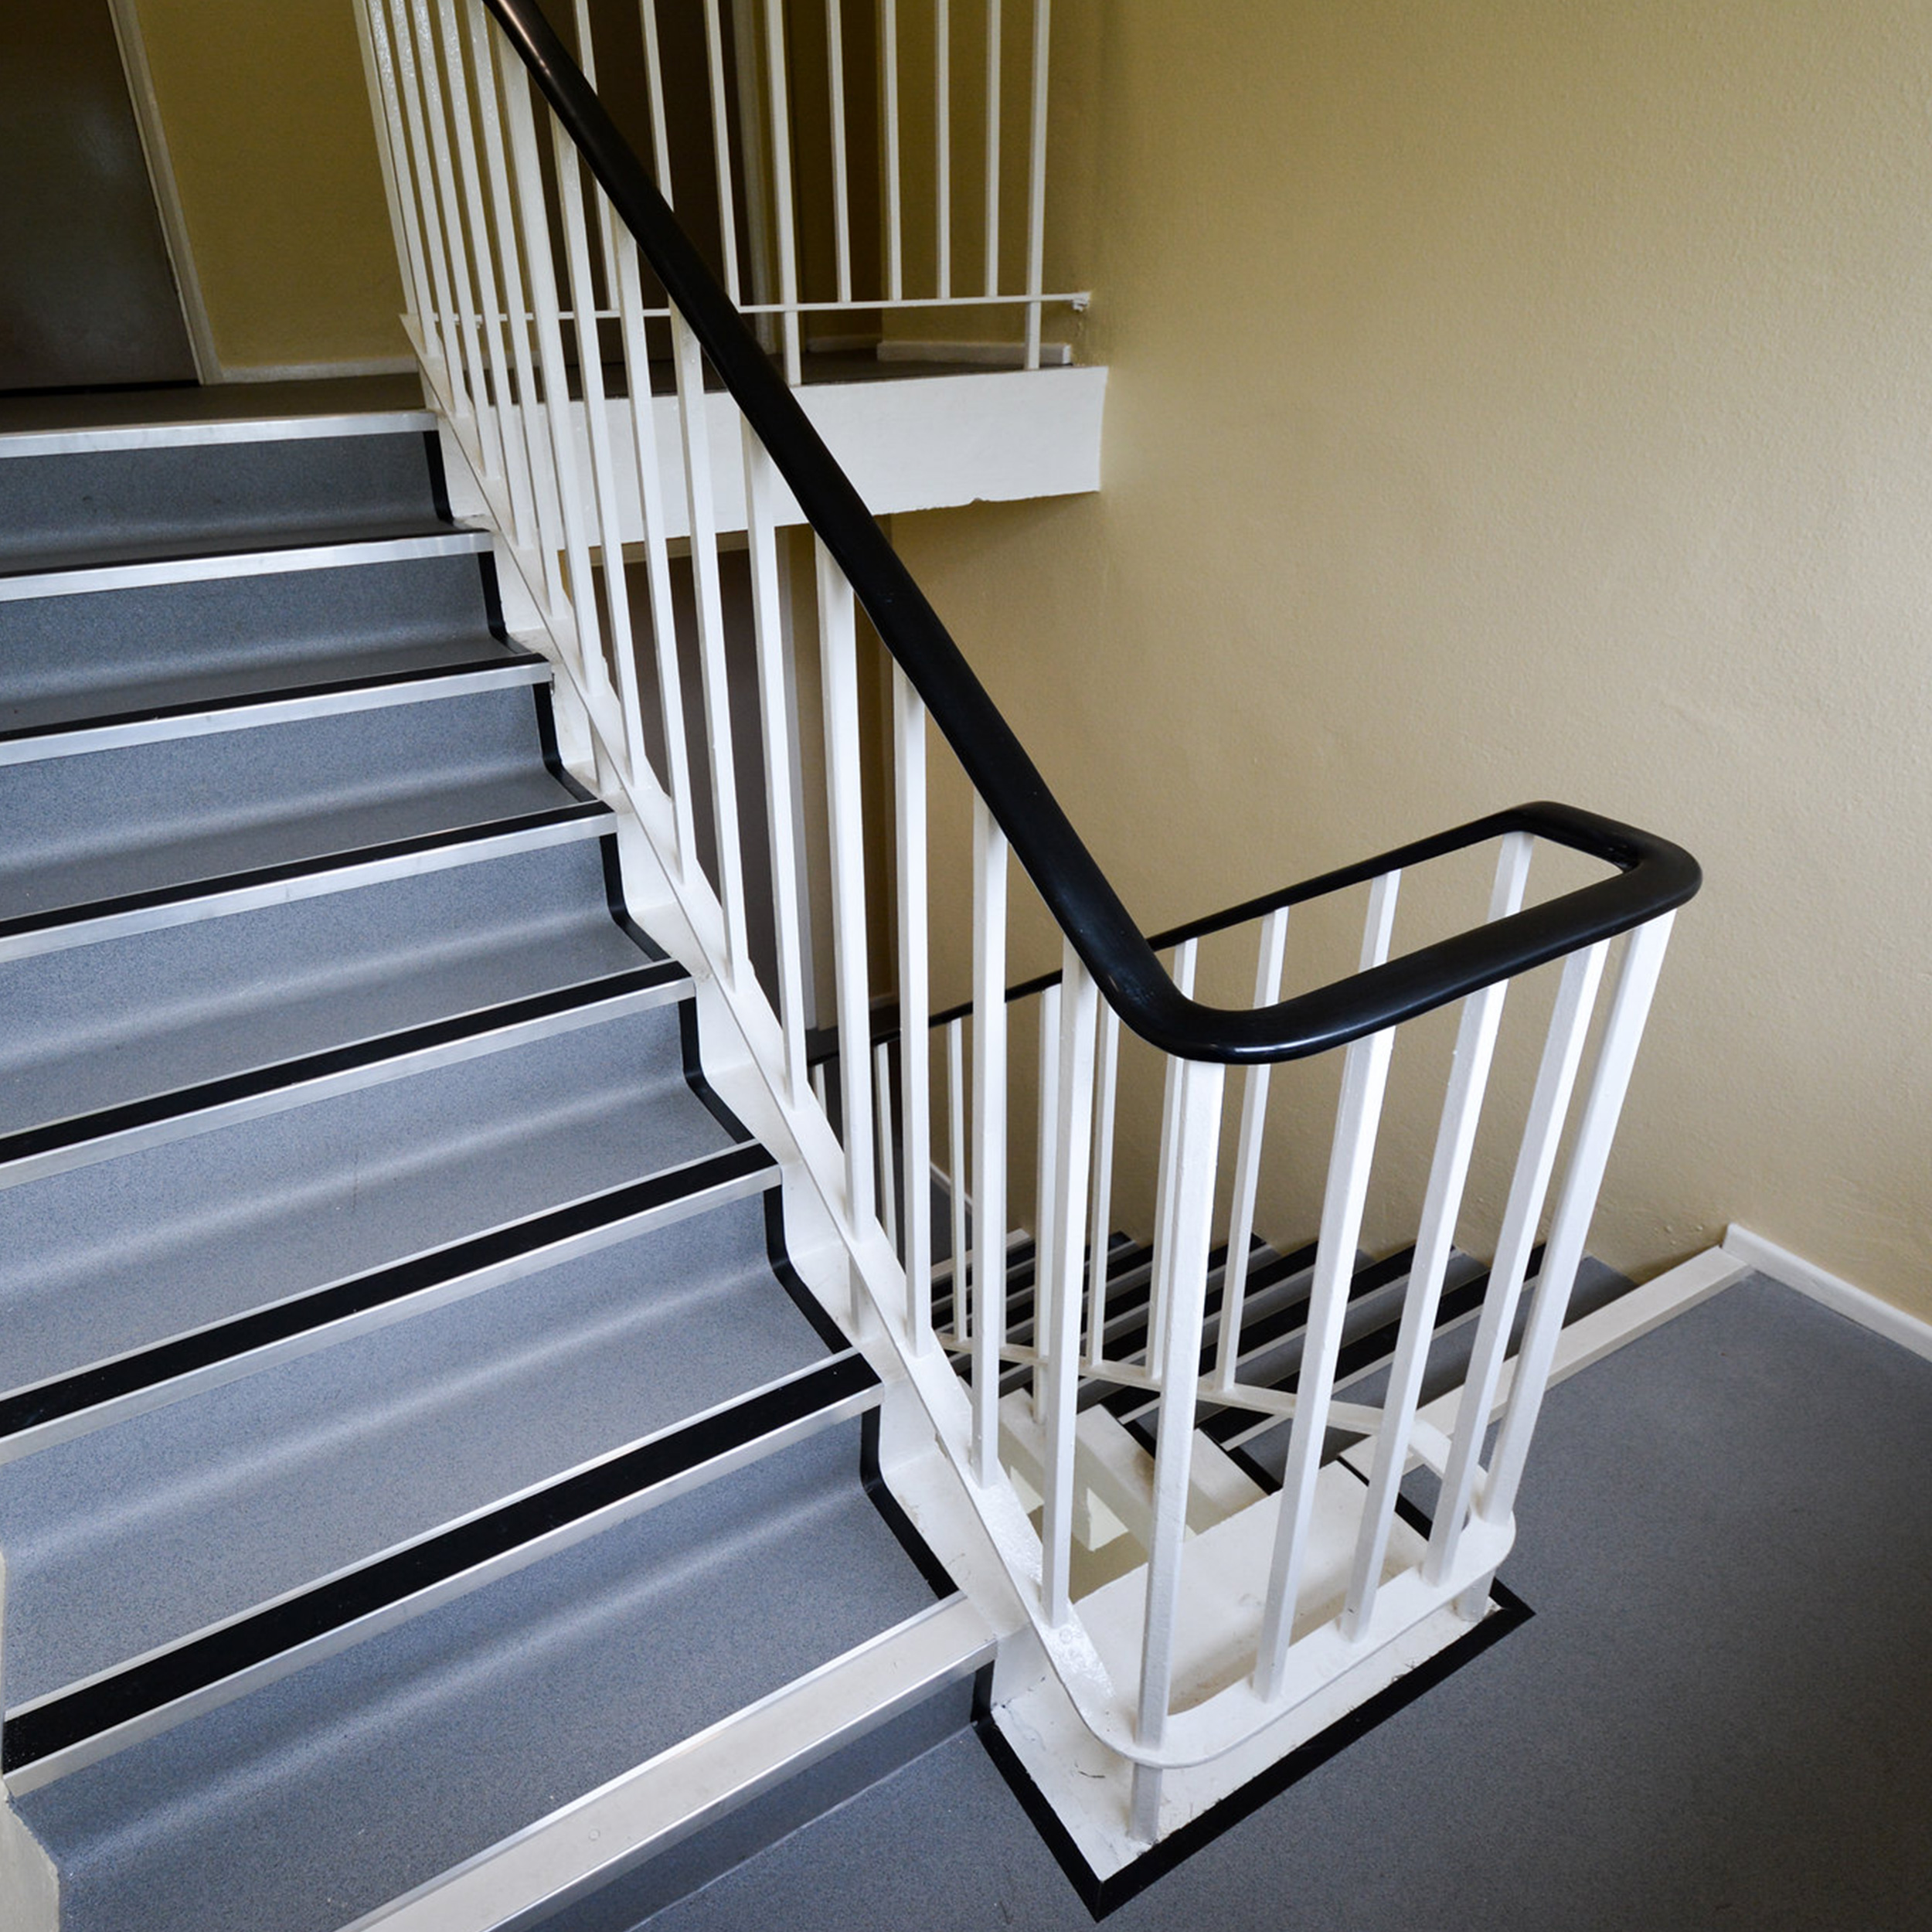 Staircase inside a residential property that is part of a major refurbishment contract